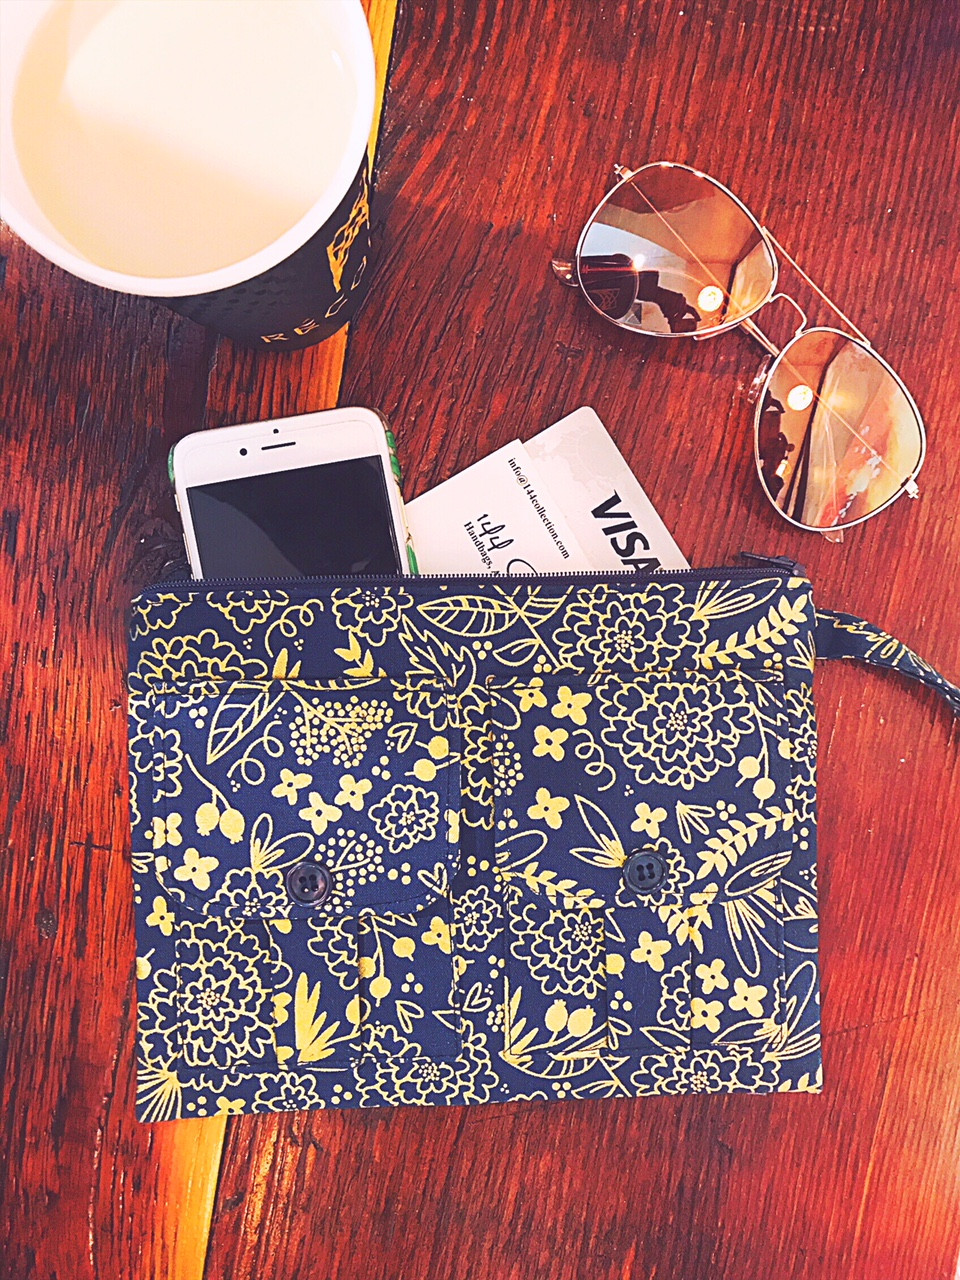 Handmade Wristlet - Blue and Metallic Gold Floral Print